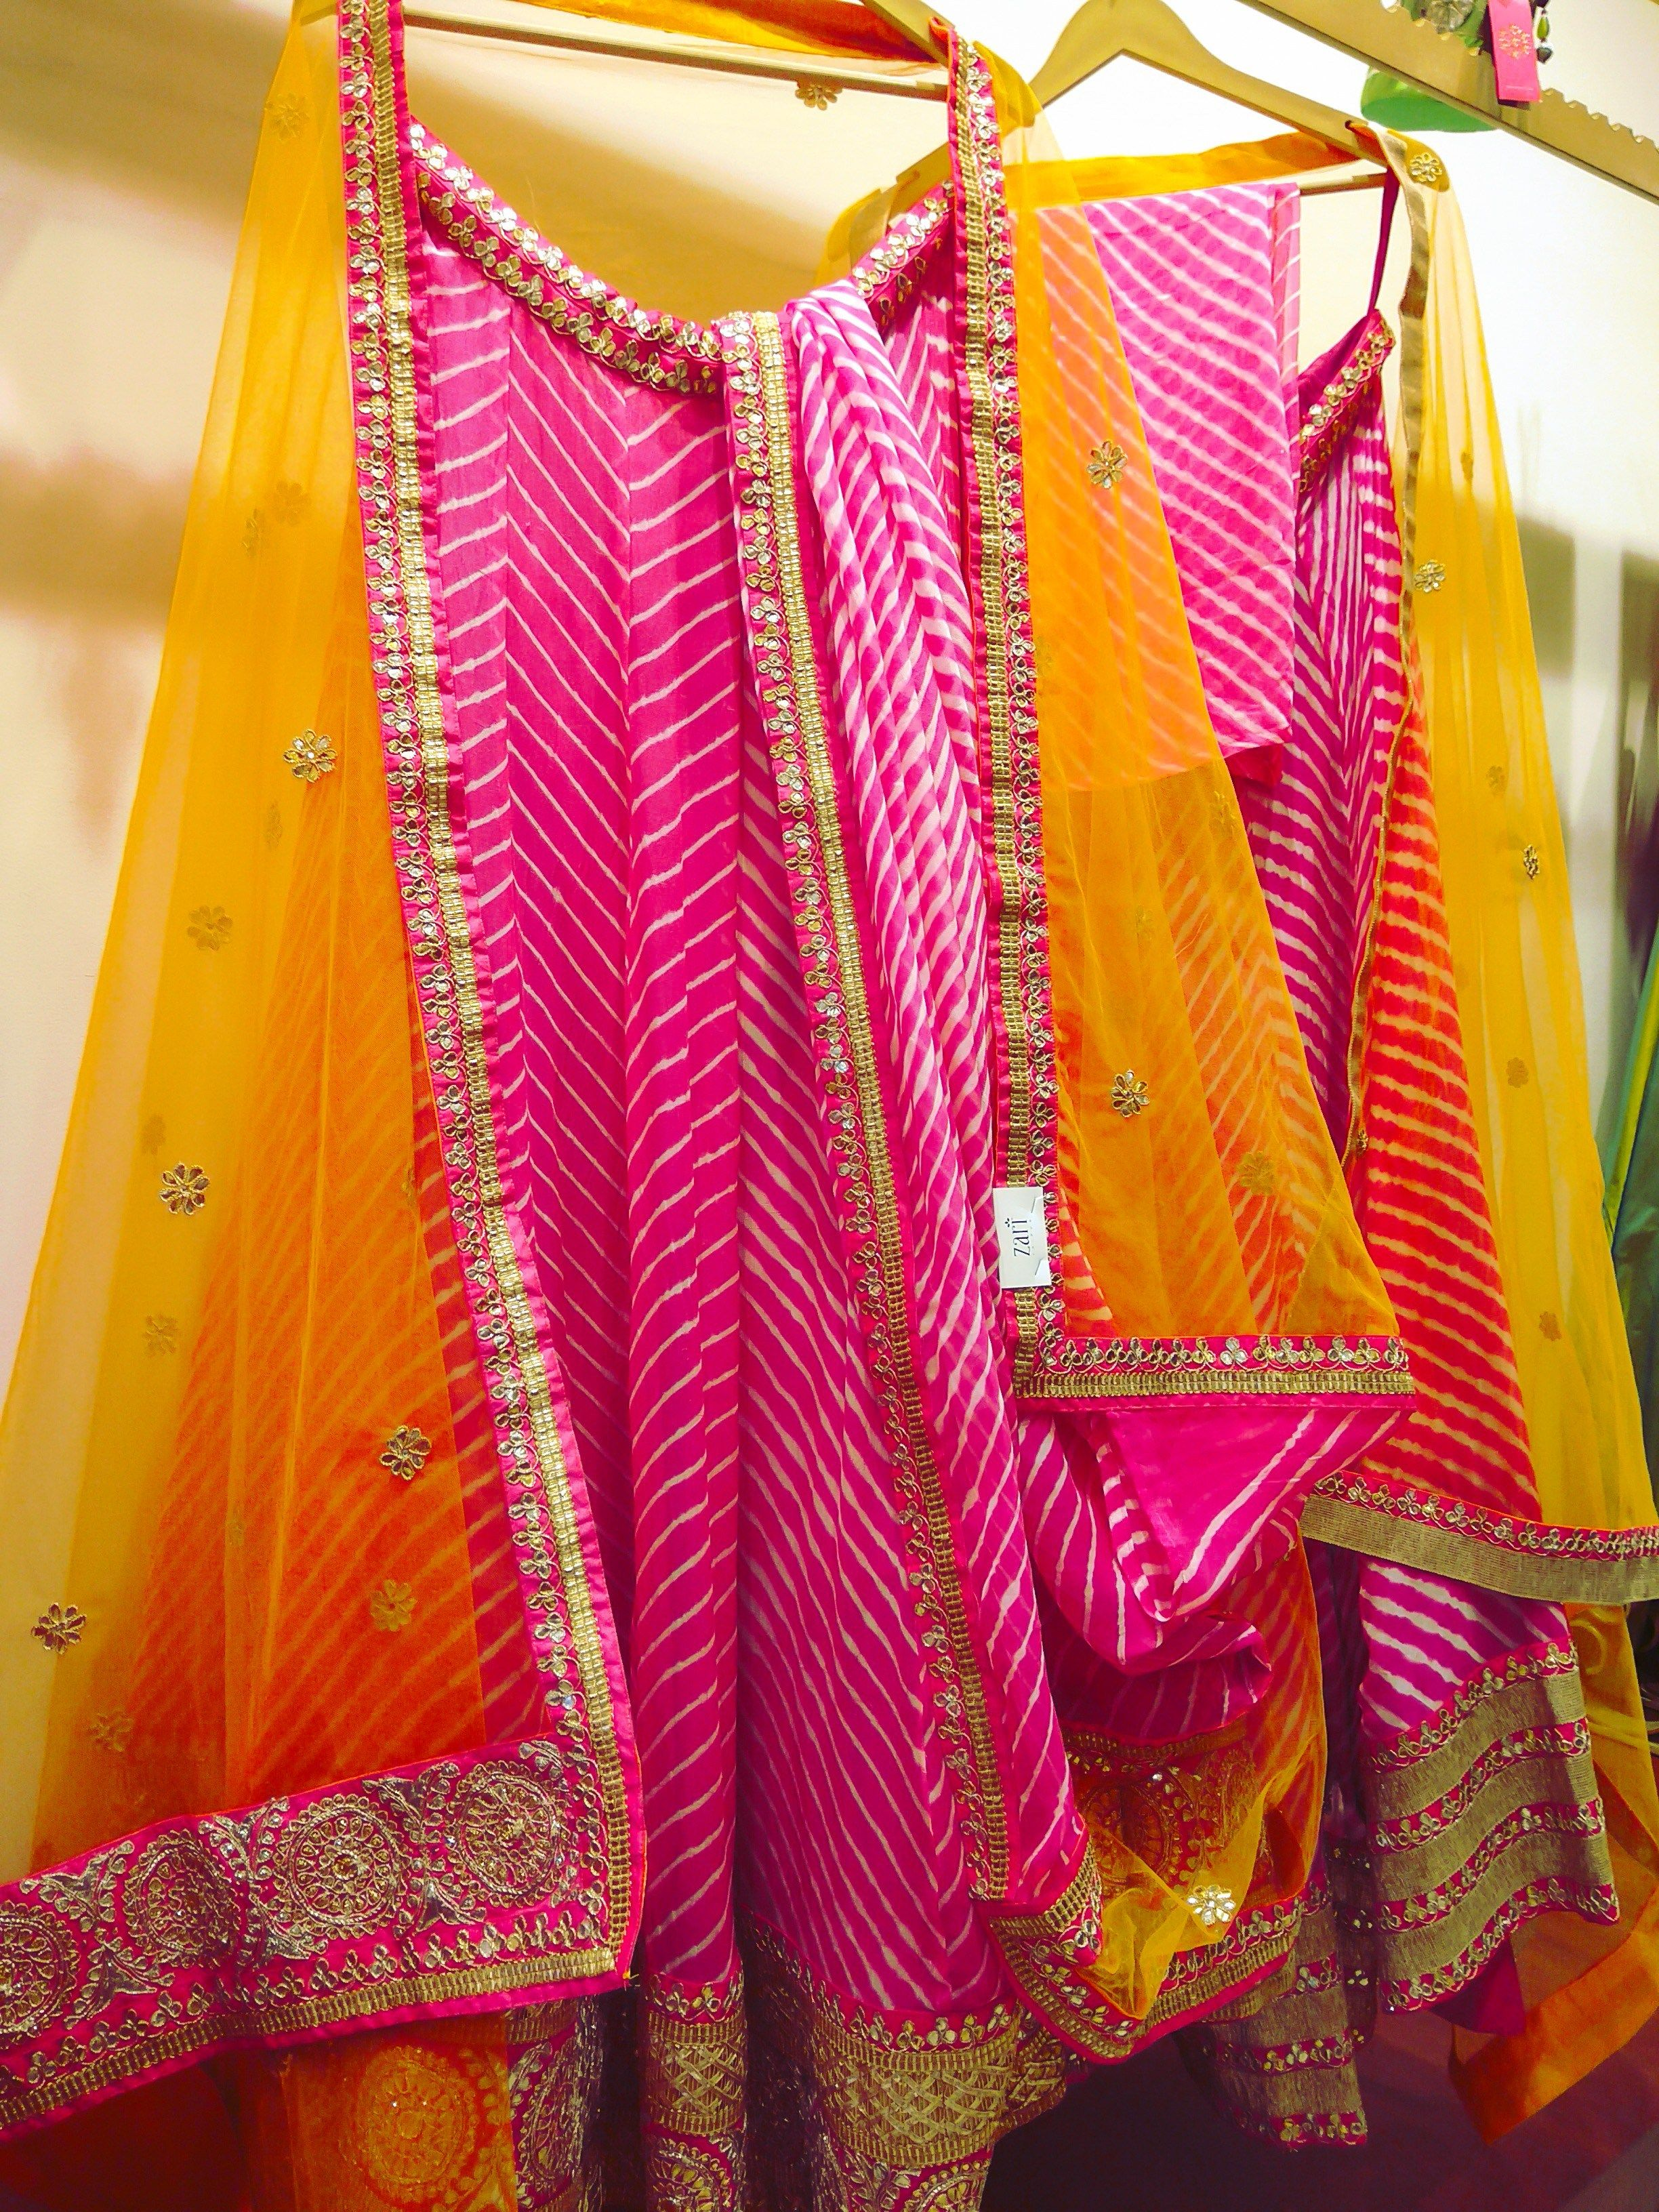 d1de8e6deb One of my favorites for a mehendi function. This gorgeous mango yellow  orange with pink